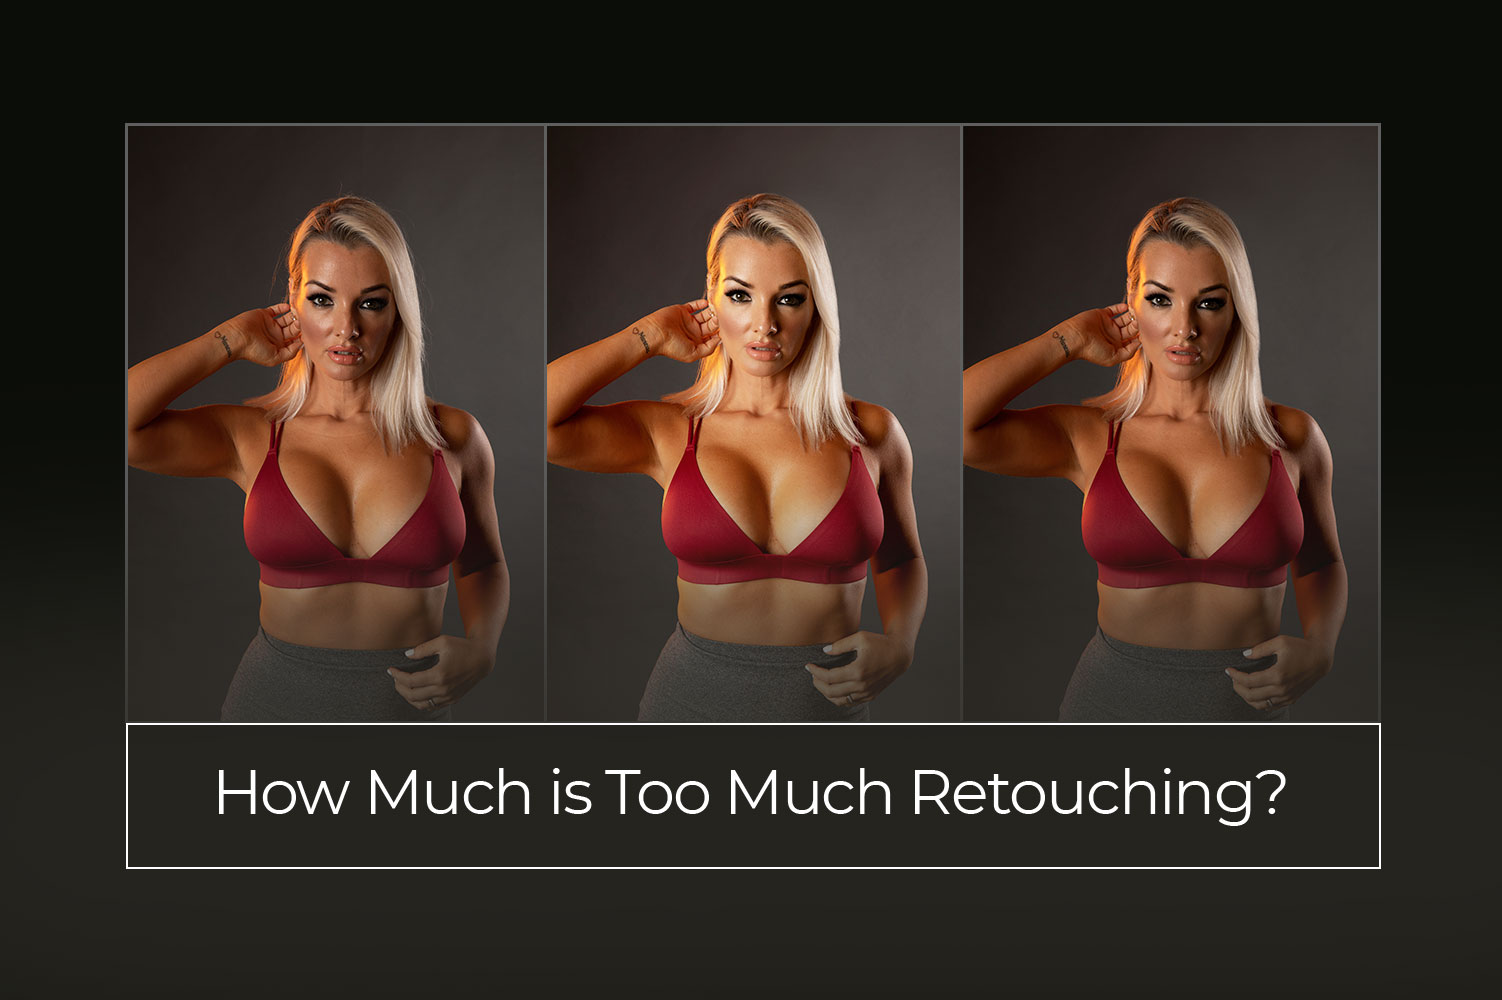 How Much is Too Much Retouching